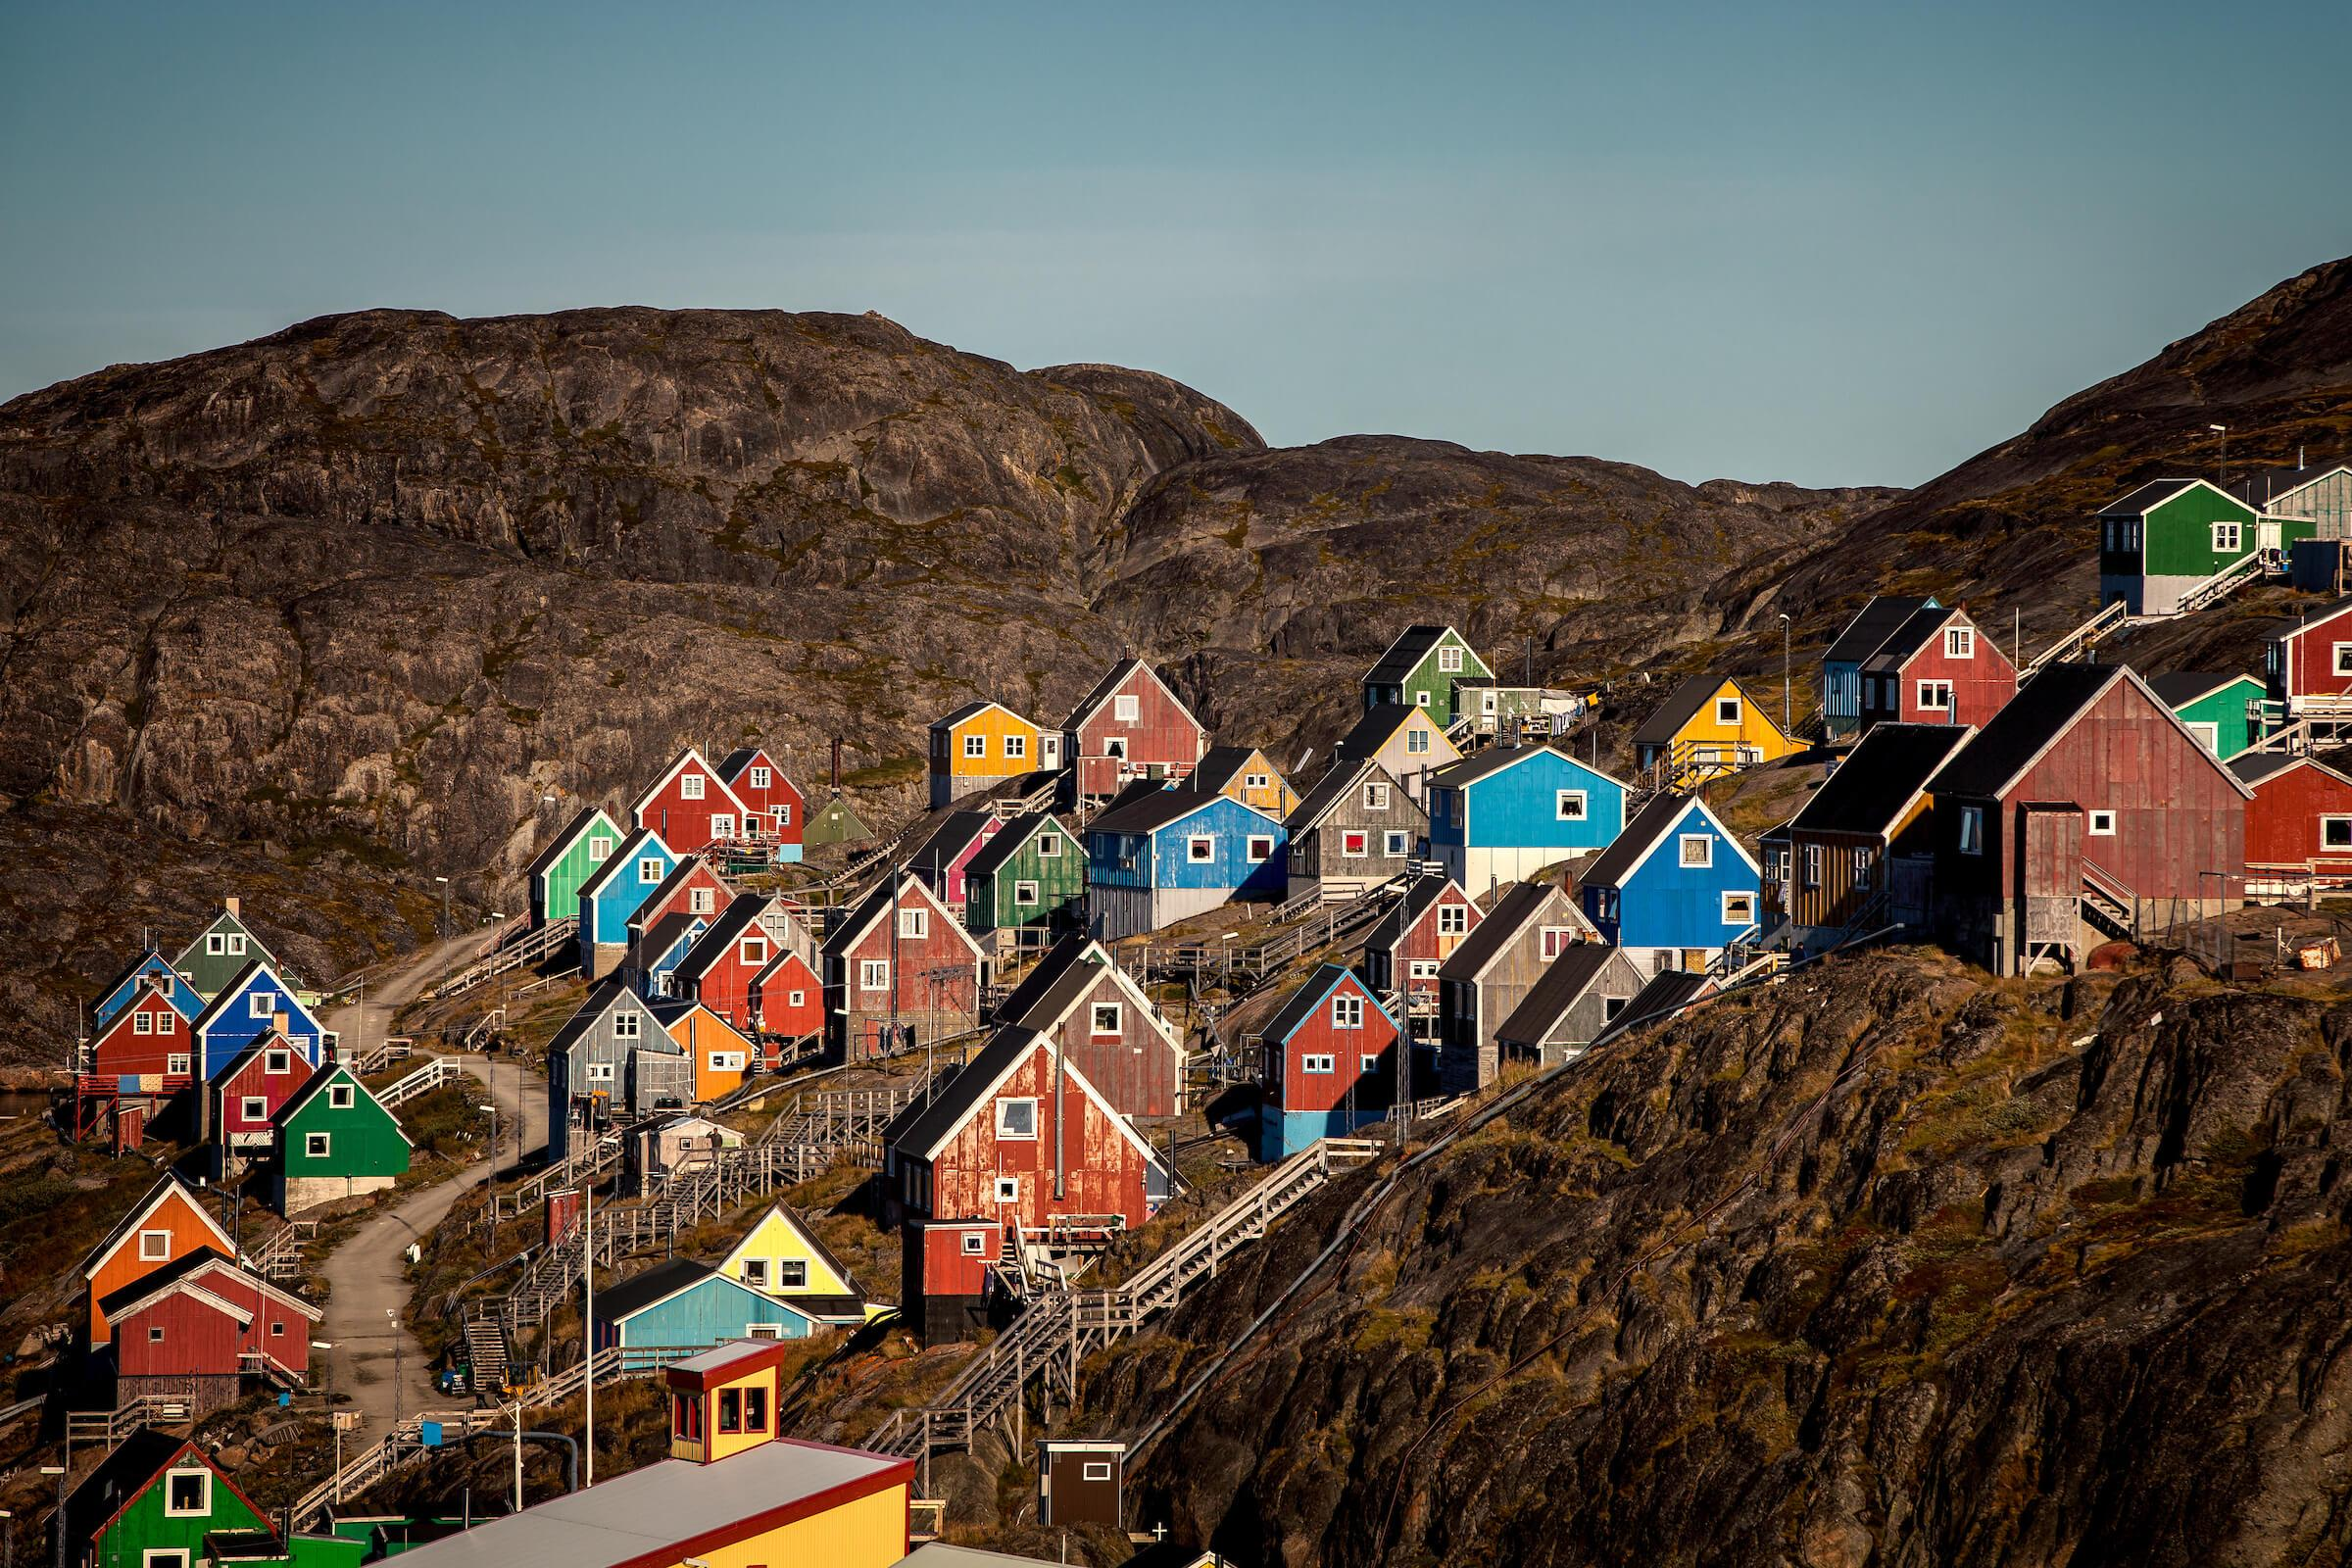 A typical view of Kangaamiut - a village in Greenland